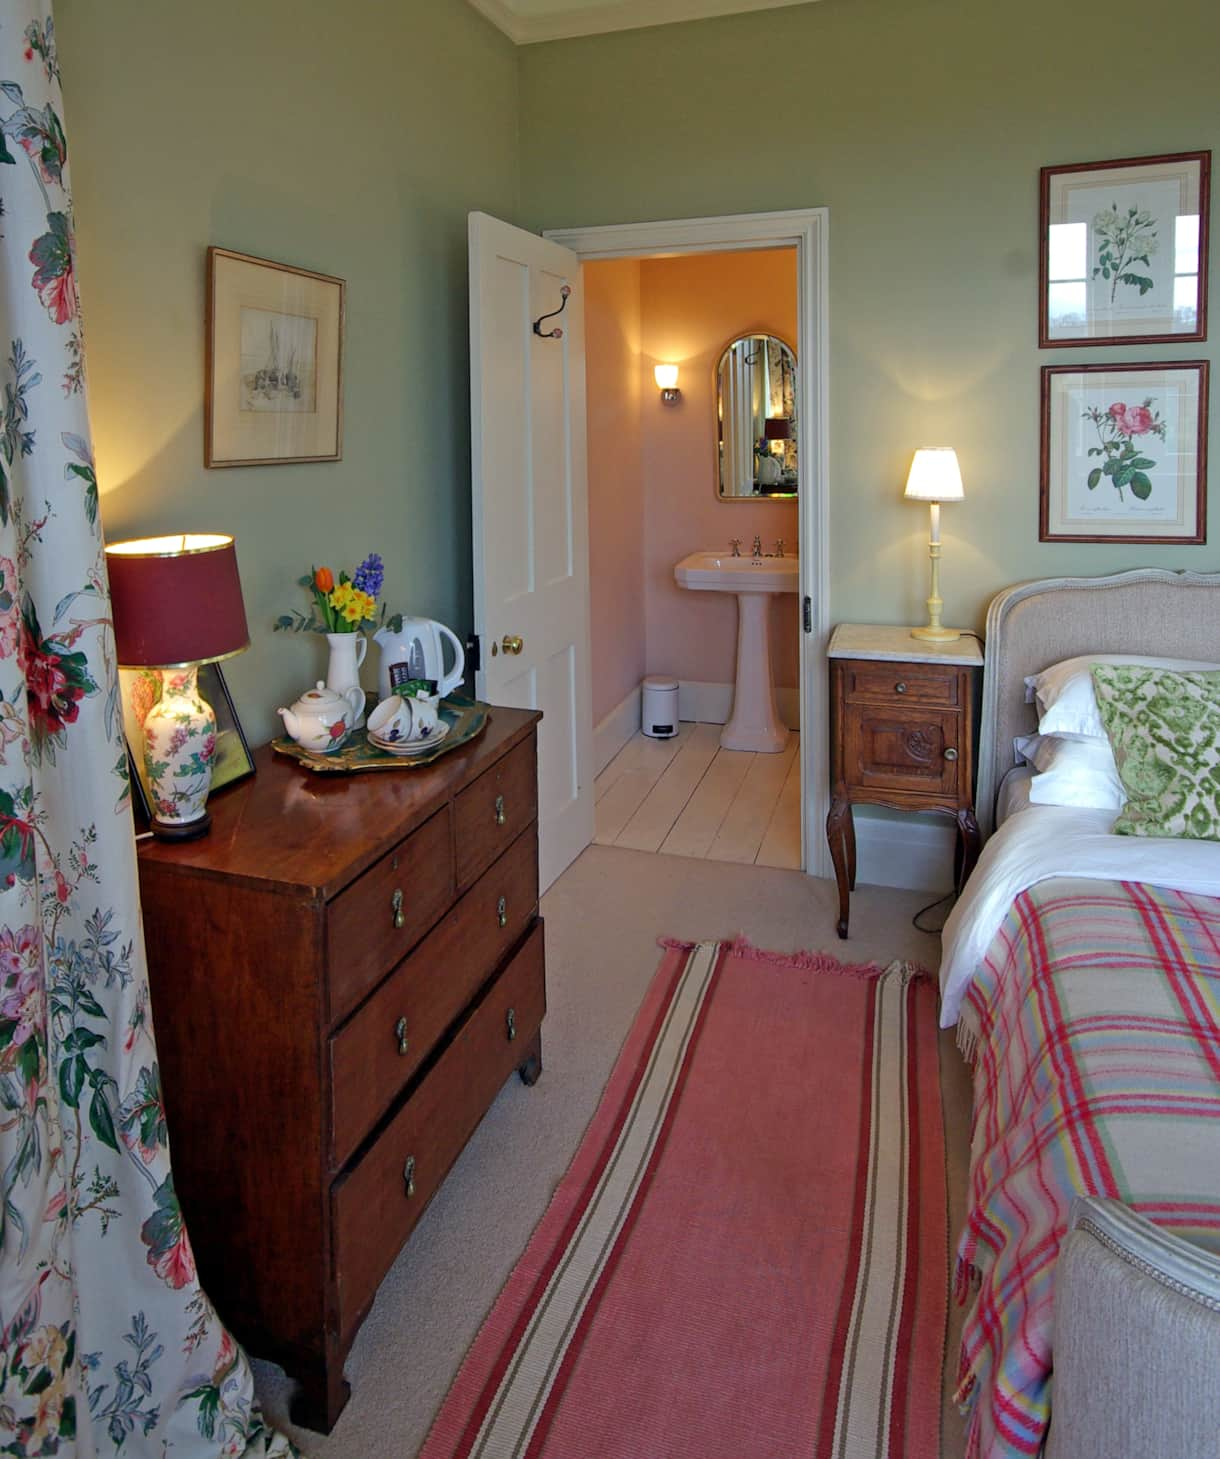 Pigeon House B&B Green Room